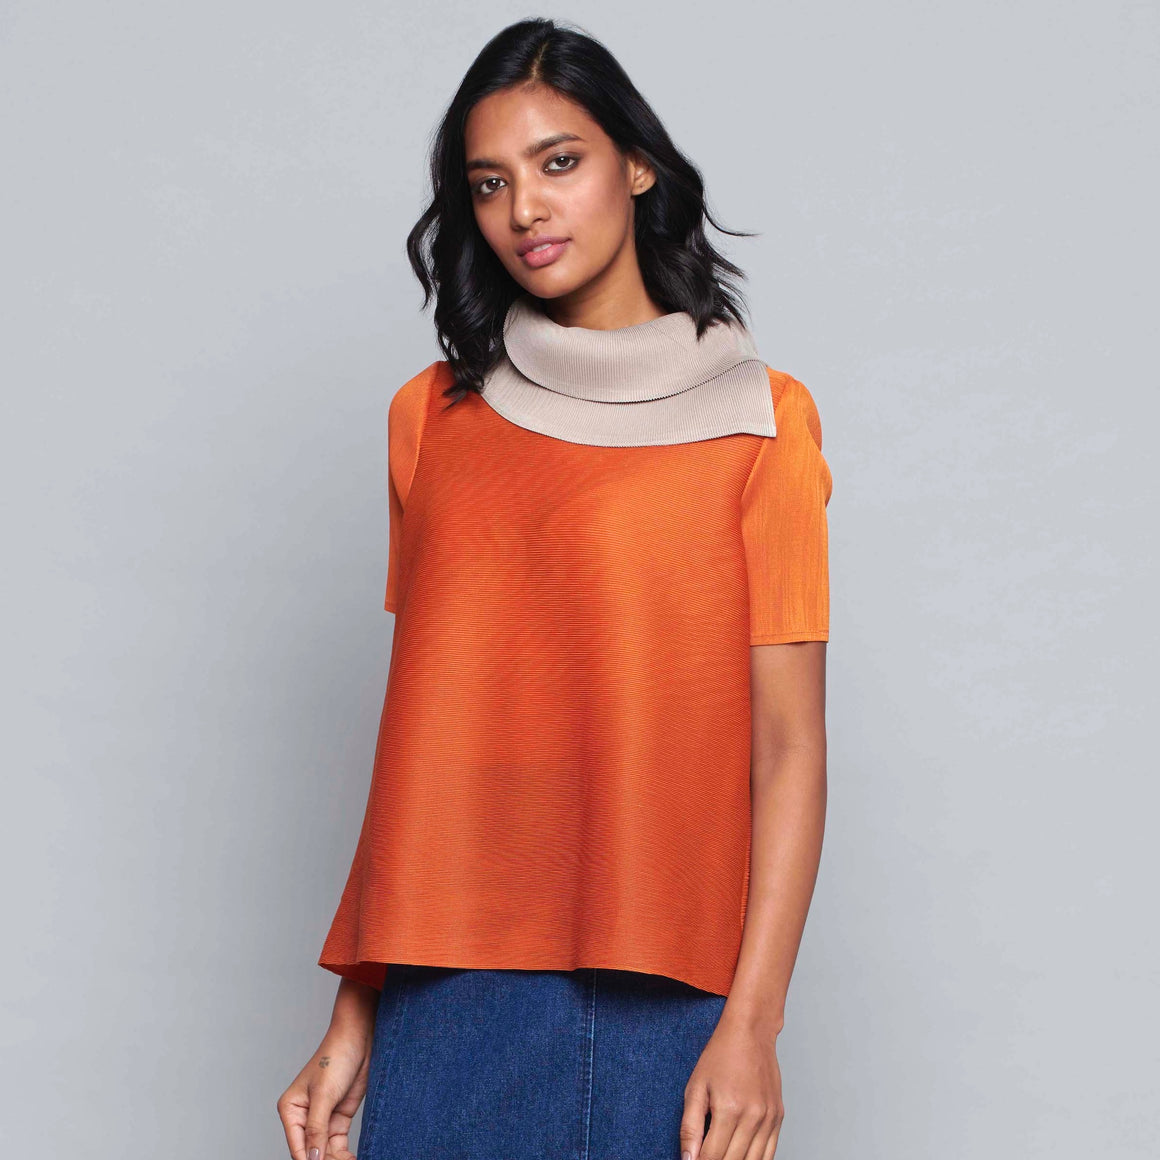 Dual Colour Turtleneck Top - Burnt Orange & Taupe